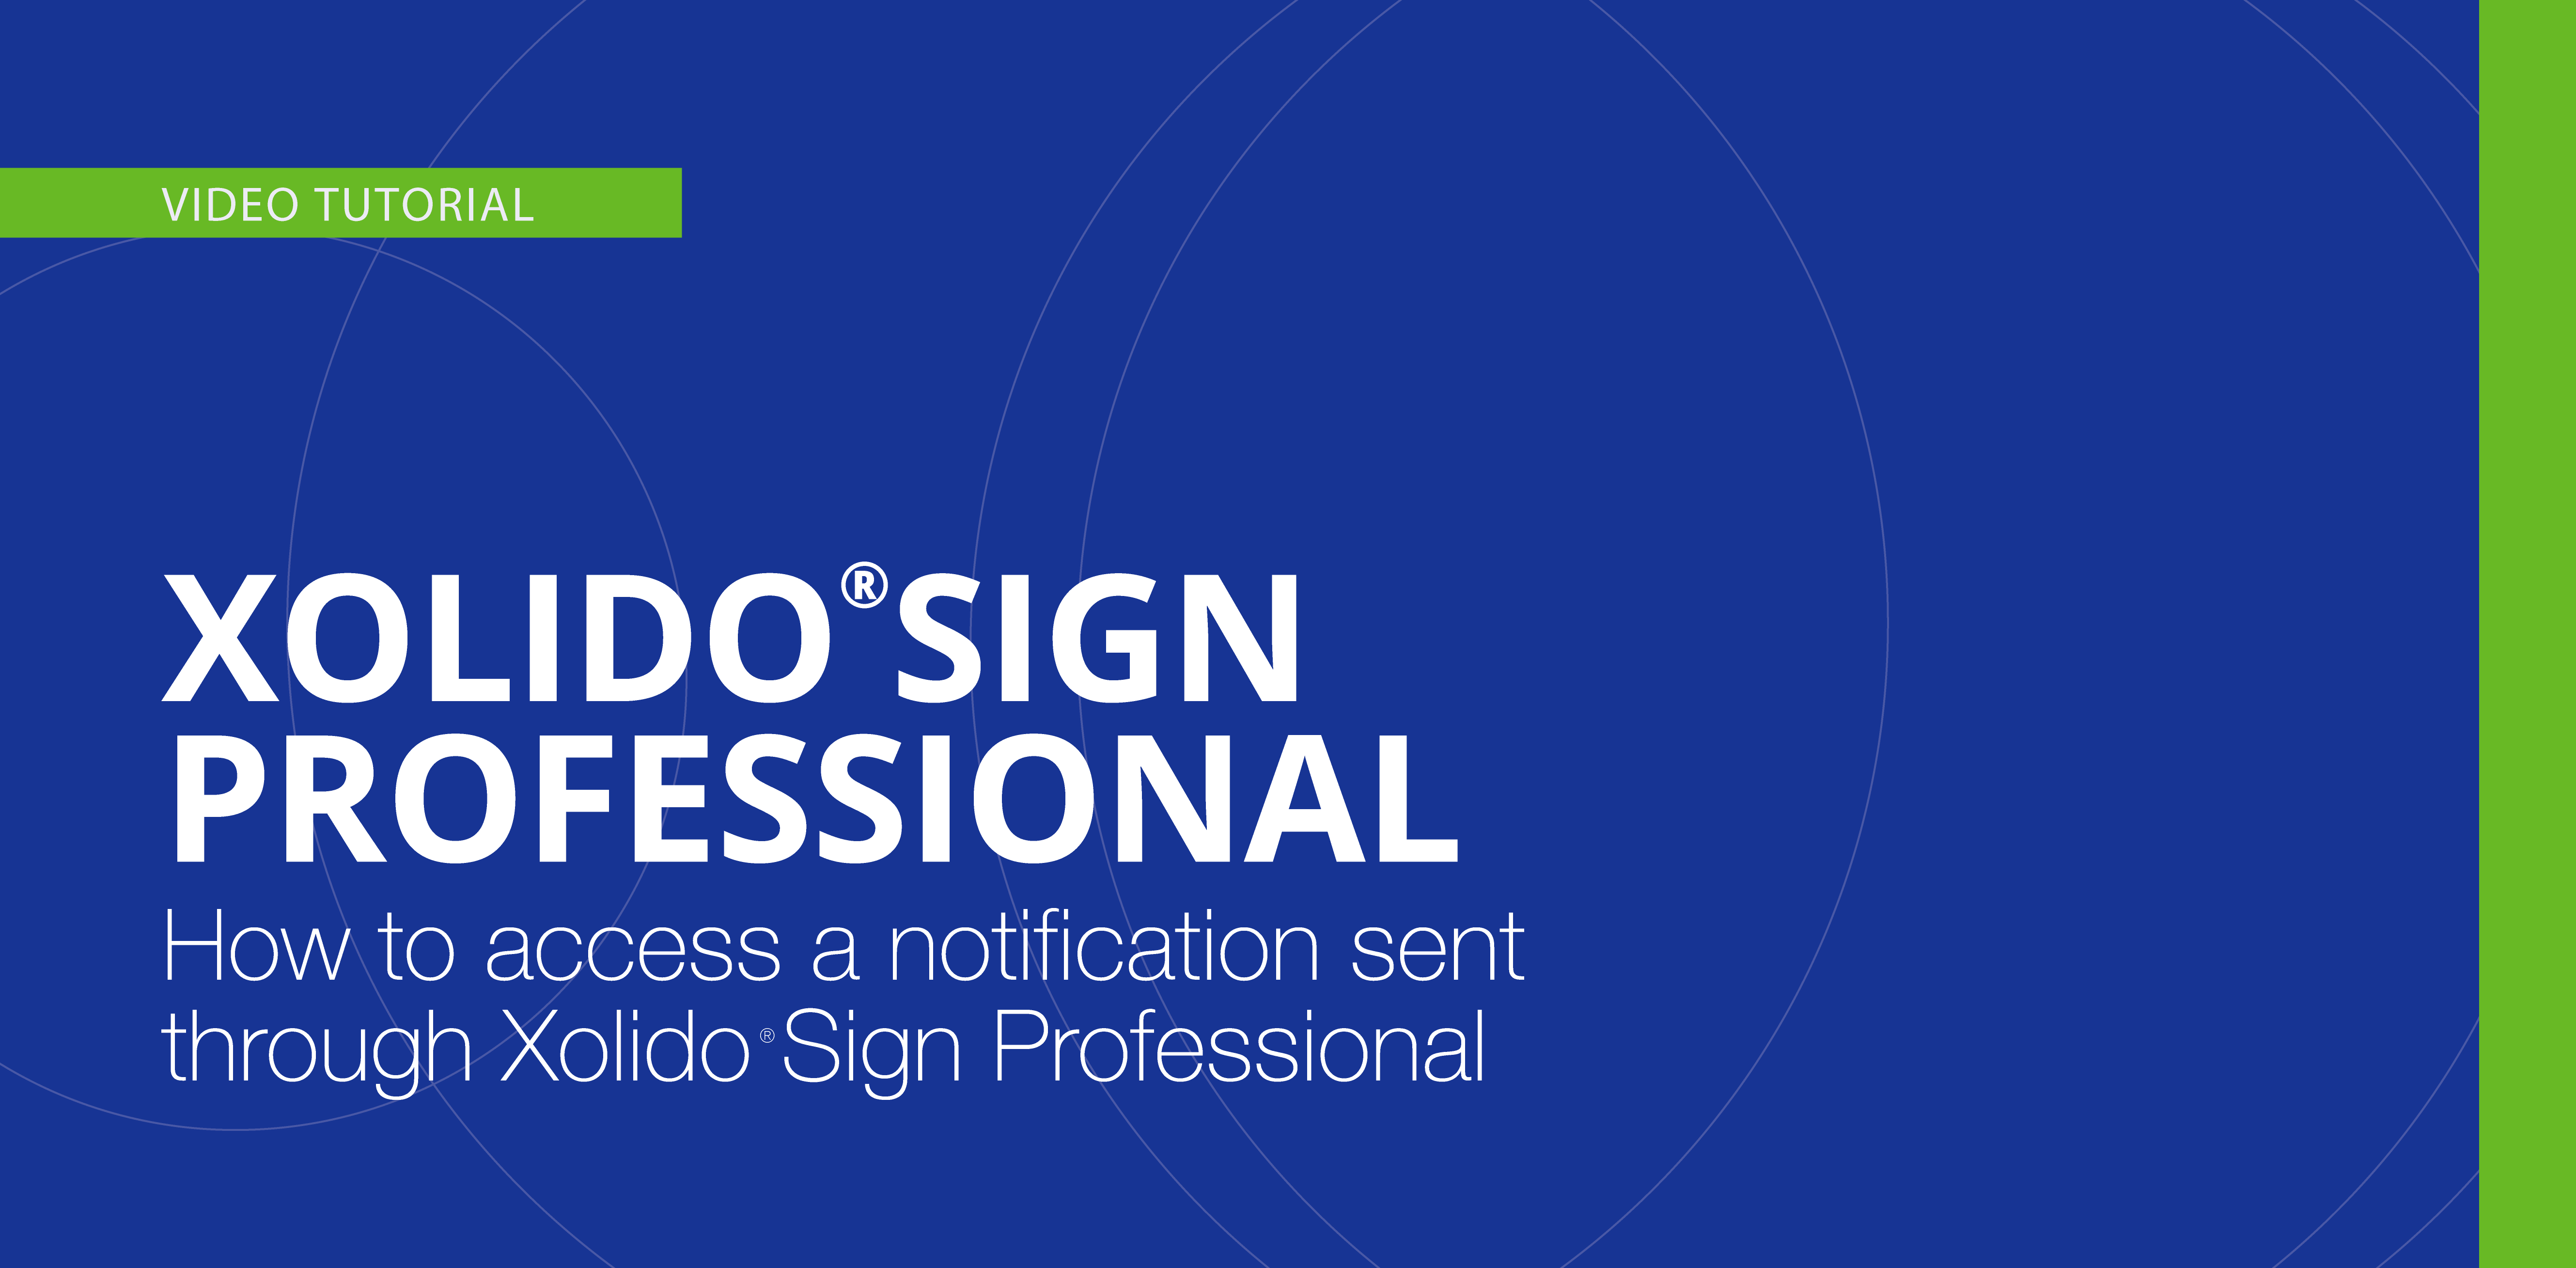 How to access a notification sent through Xolido®Sign Professional